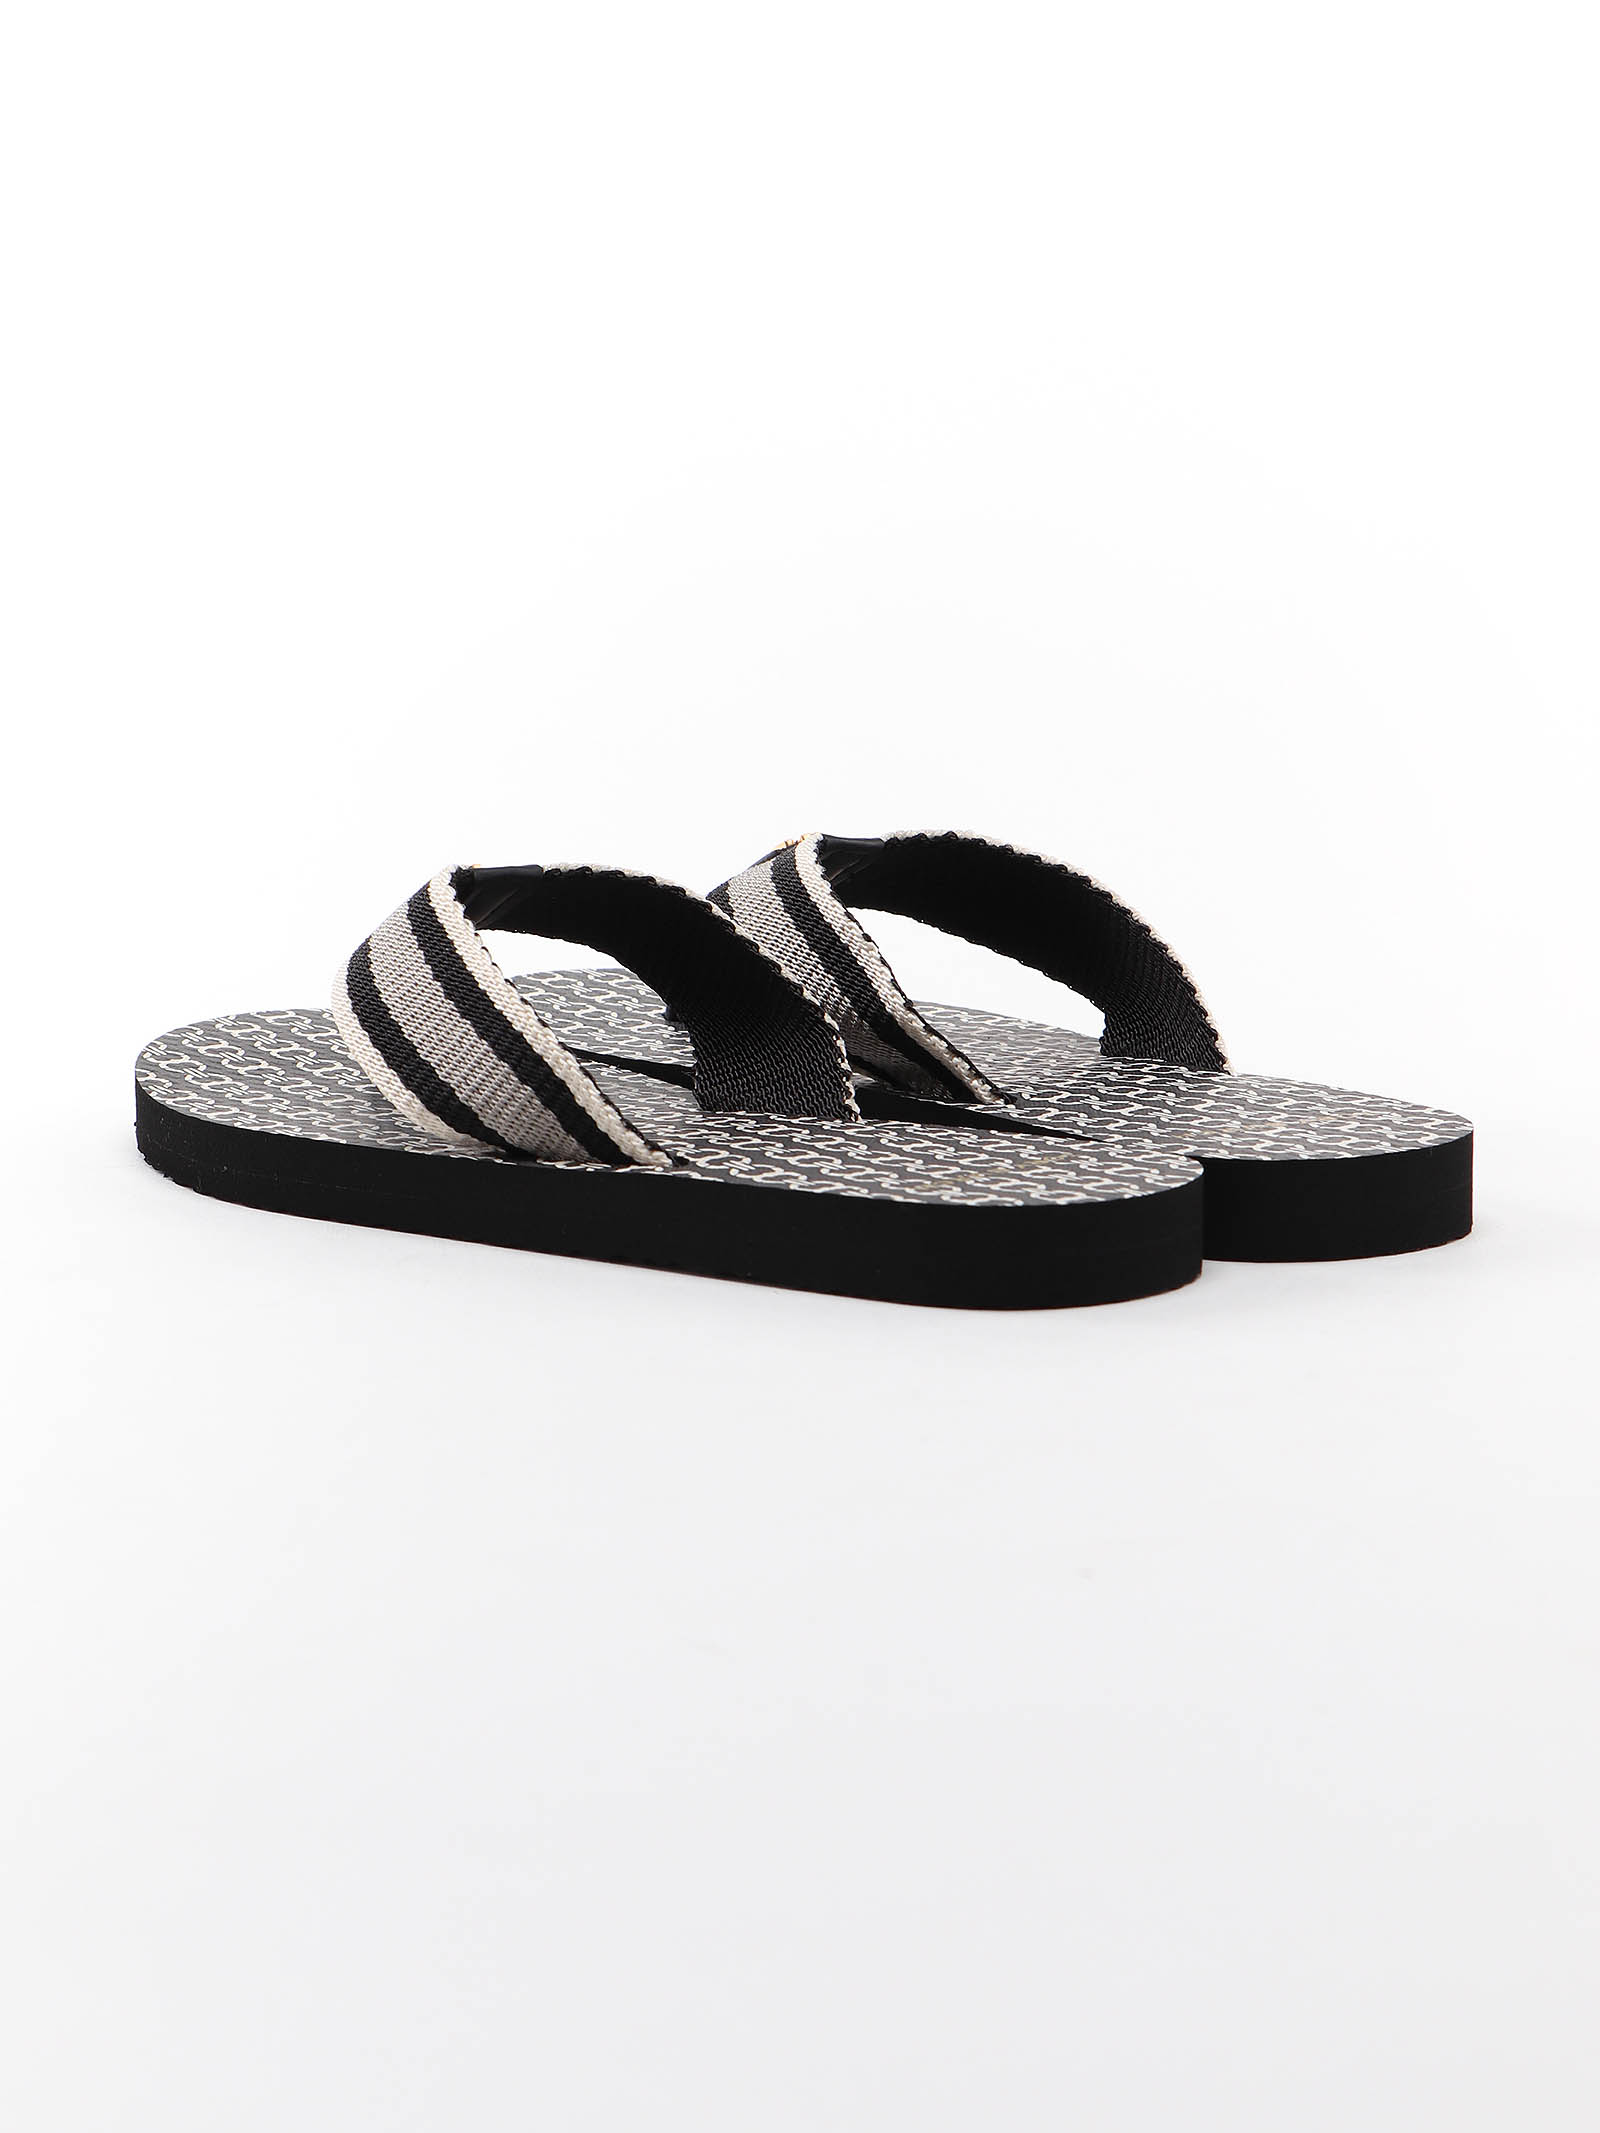 Picture of Tory Burch | Gemini Link Thin Flip Flop